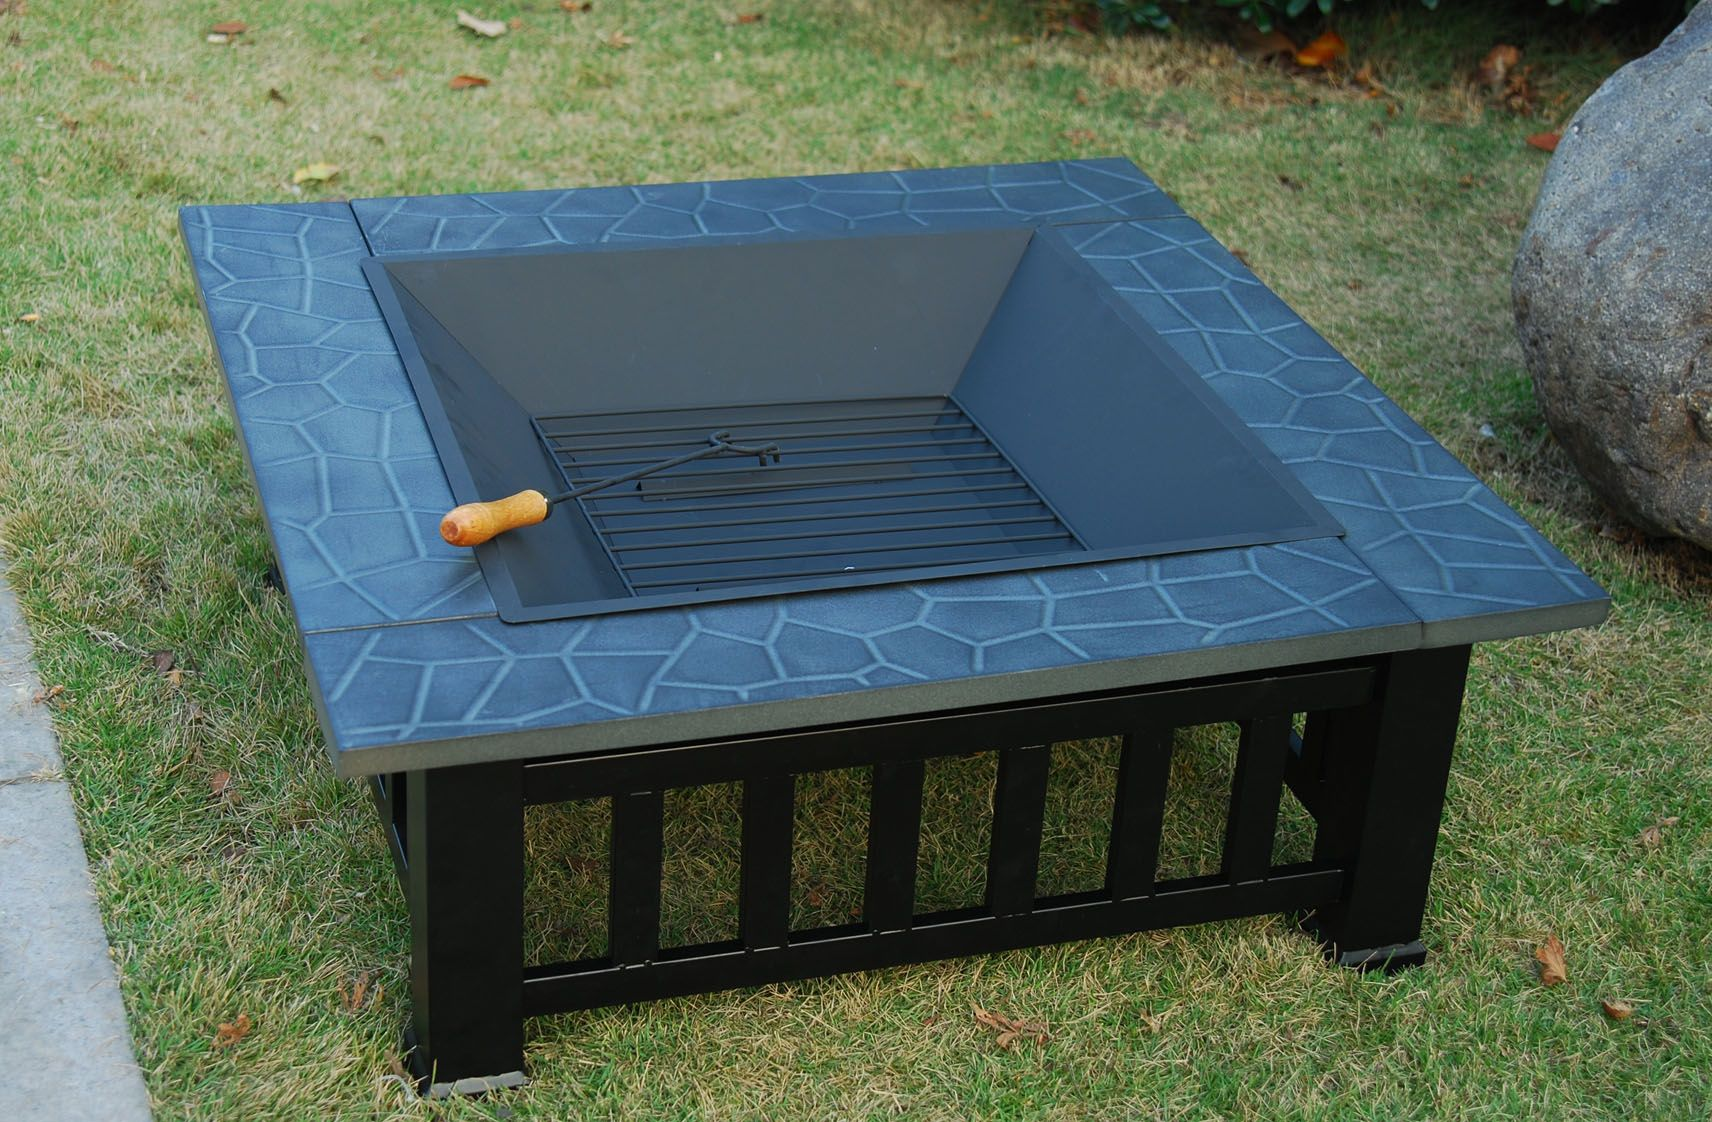 Indoor fire pit coffee table - Fire Pit Coffee Table Indoor Uk Indoor Fire Pit Uk Coffee Table